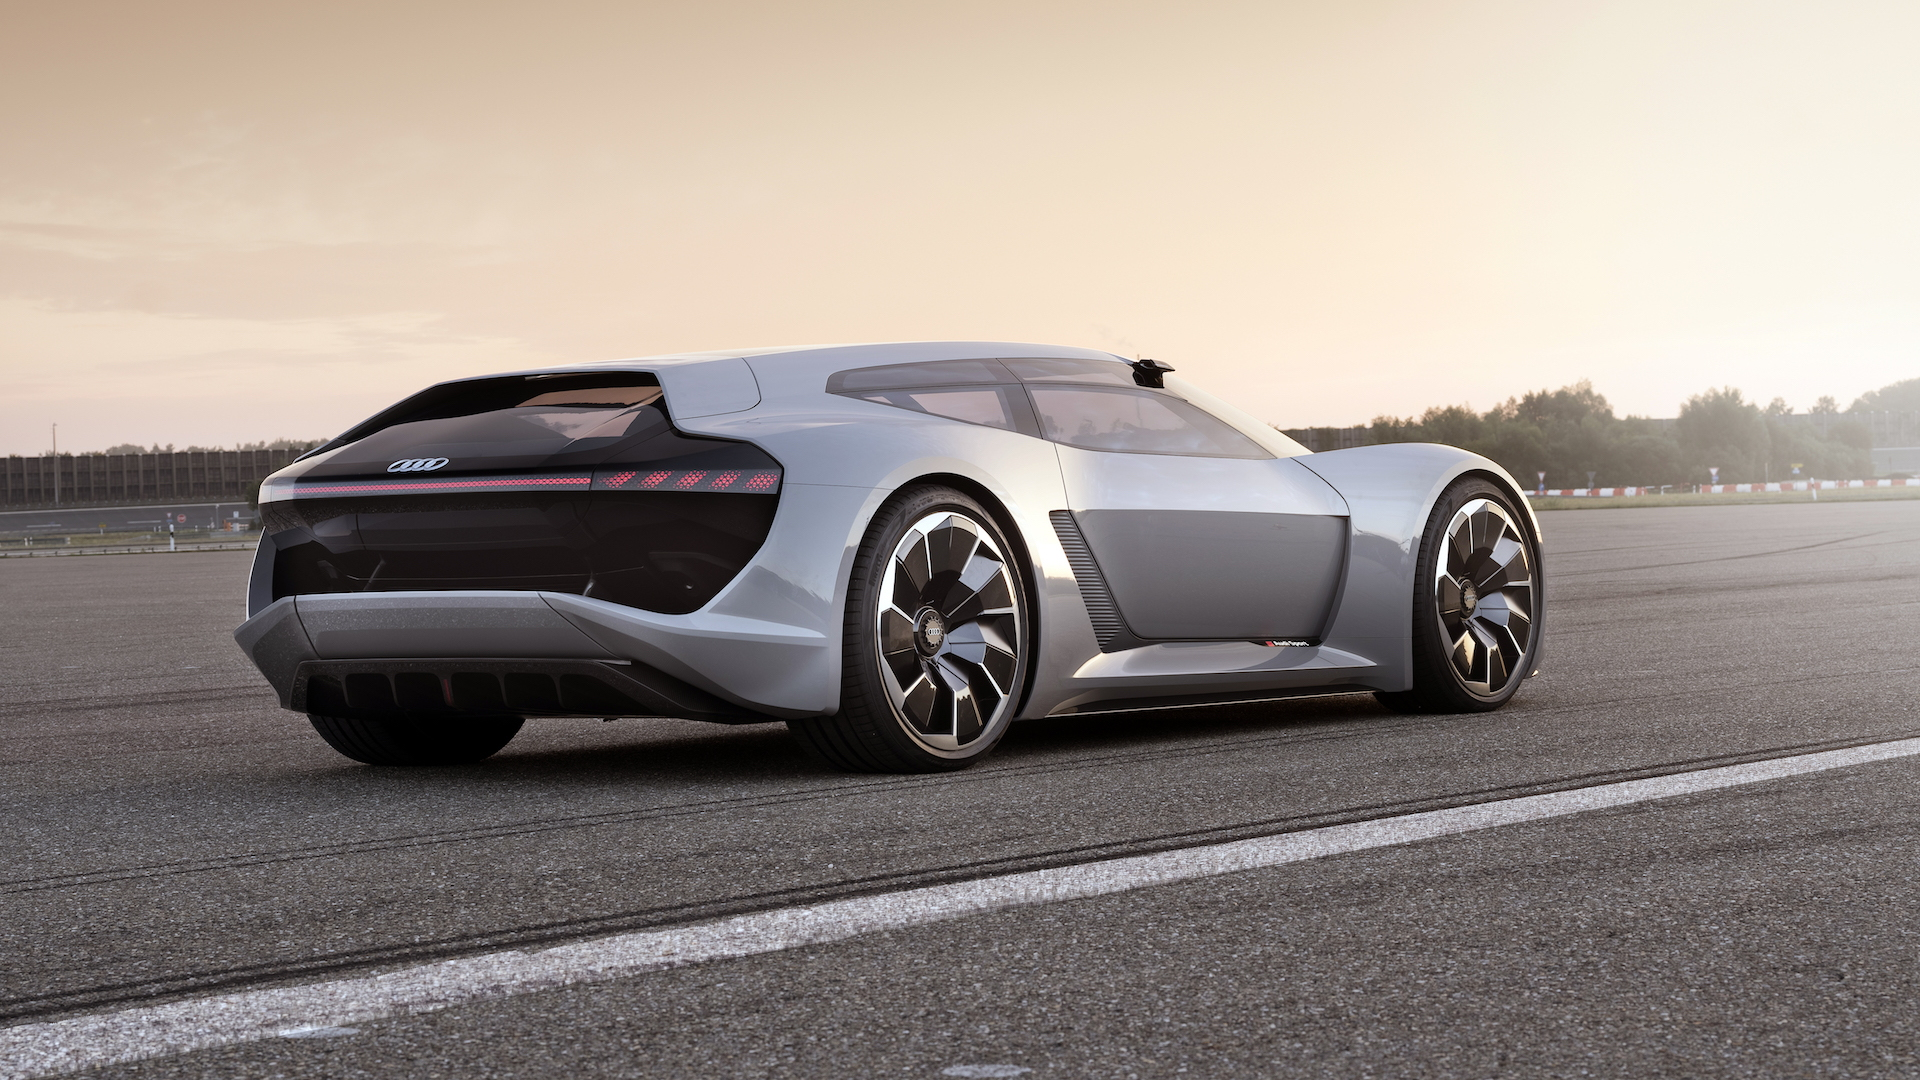 Audi reveals PB18 e-tron concept in Monterey–with moveable